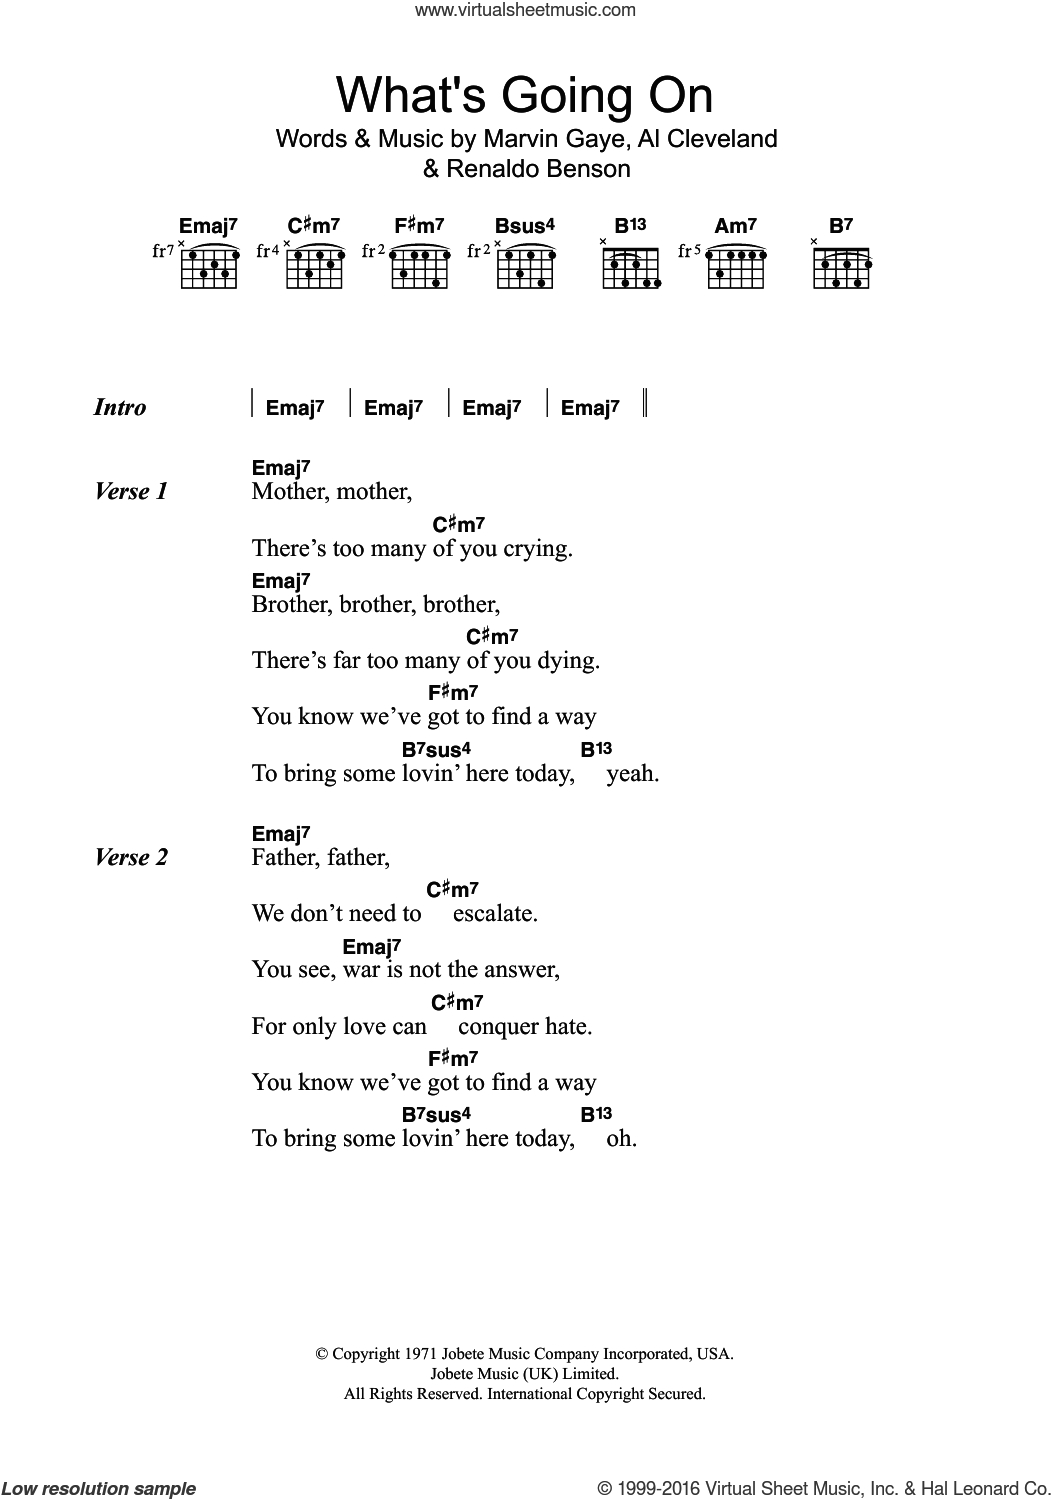 What's Going On Chords Gaye Whats Going On Sheet Music For Guitar Chords Pdf